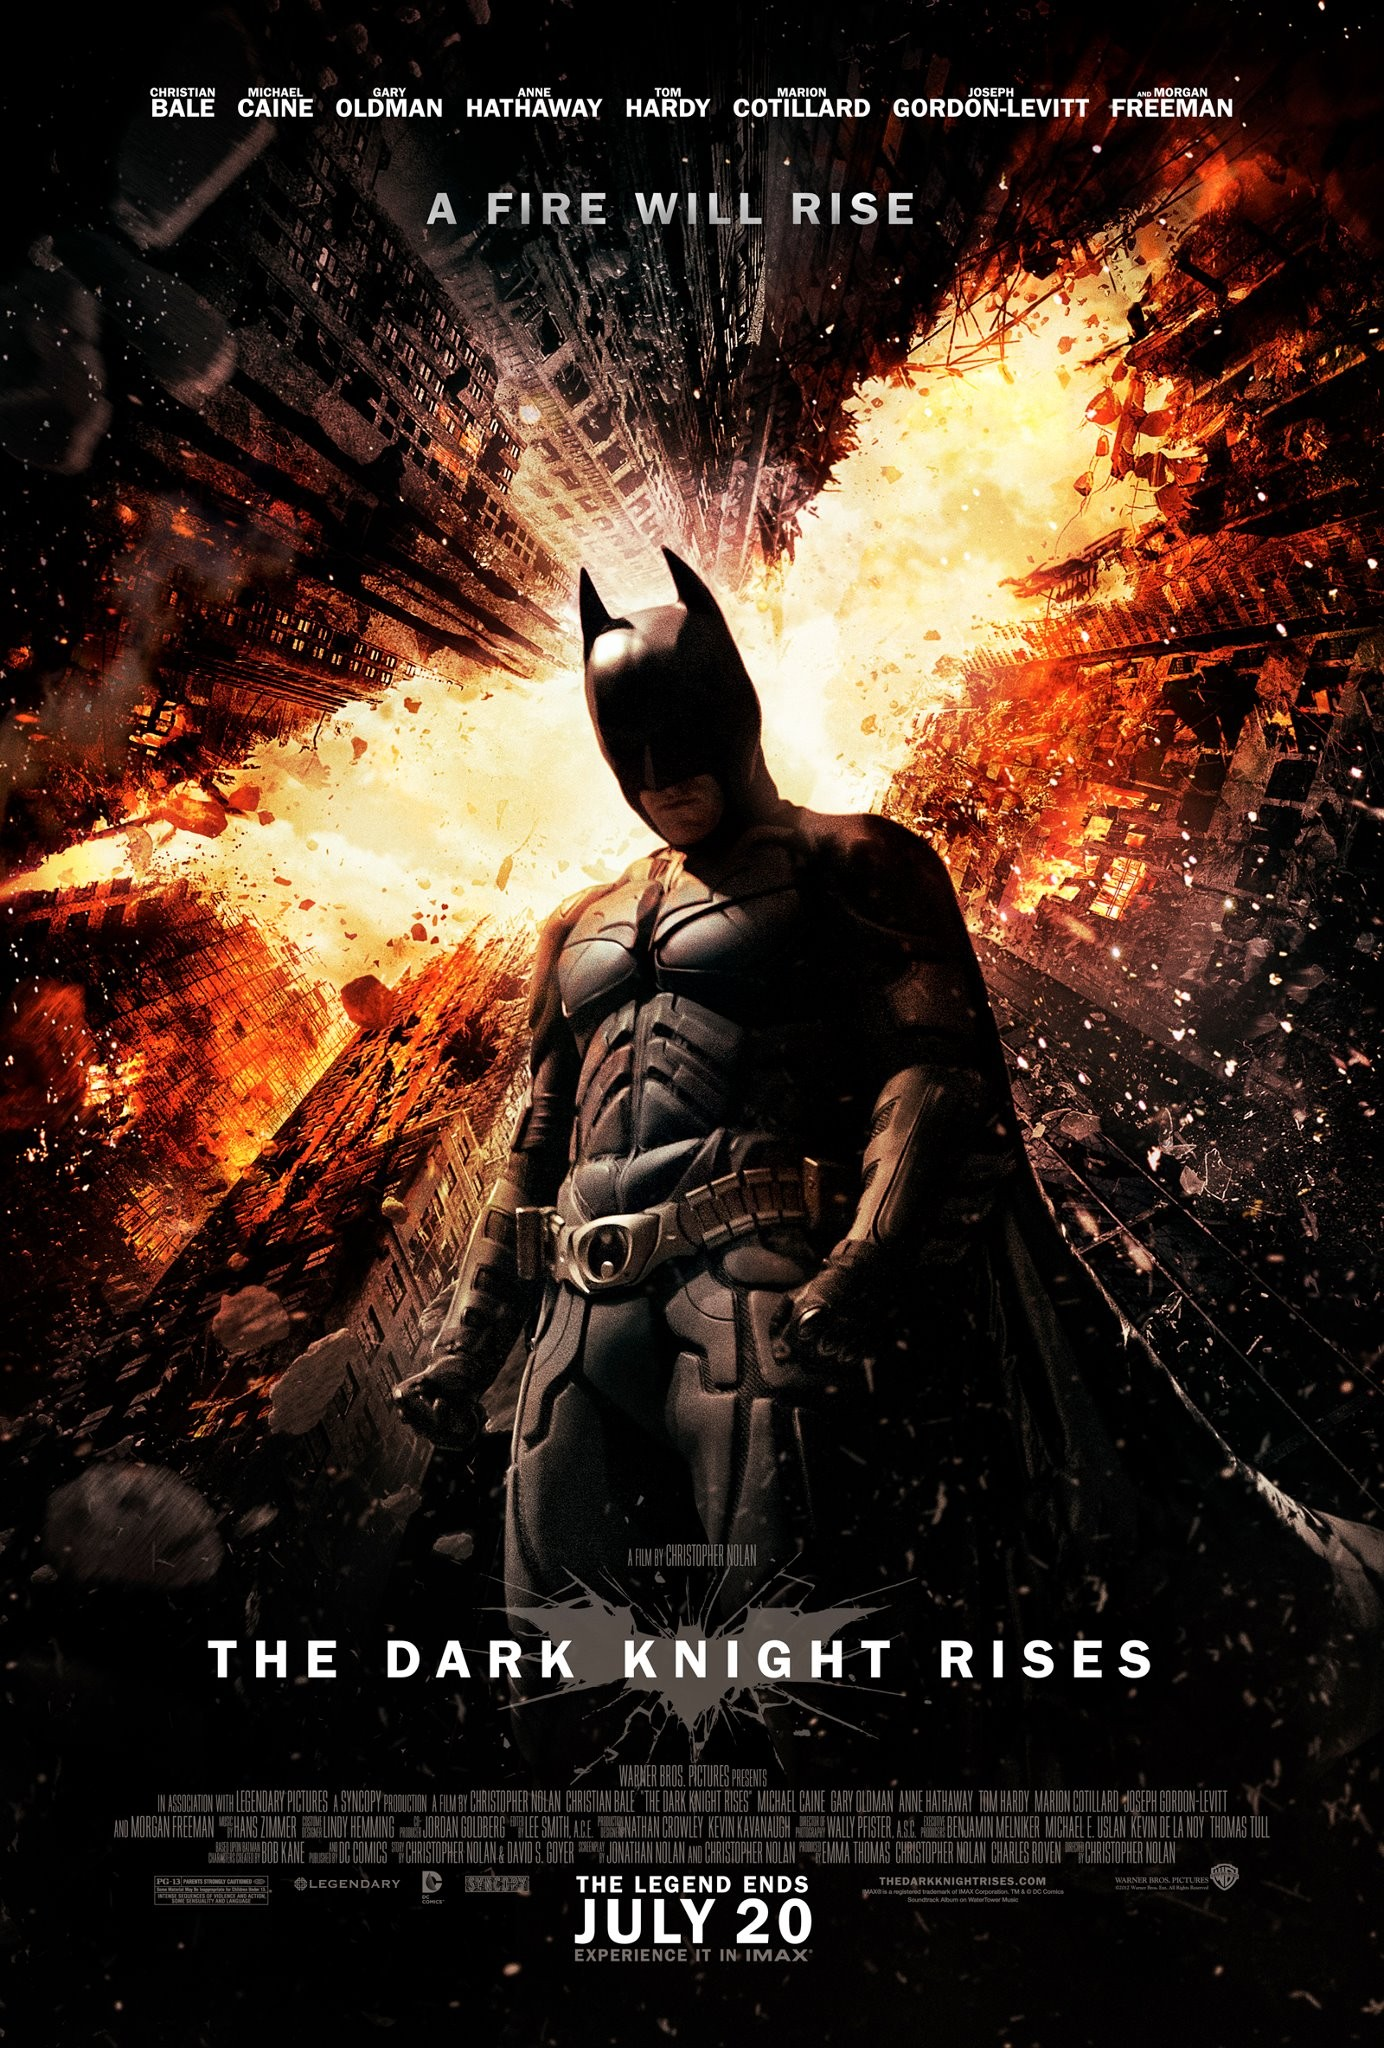 The Dark Knight Rises - A Fire Will Rise Poster